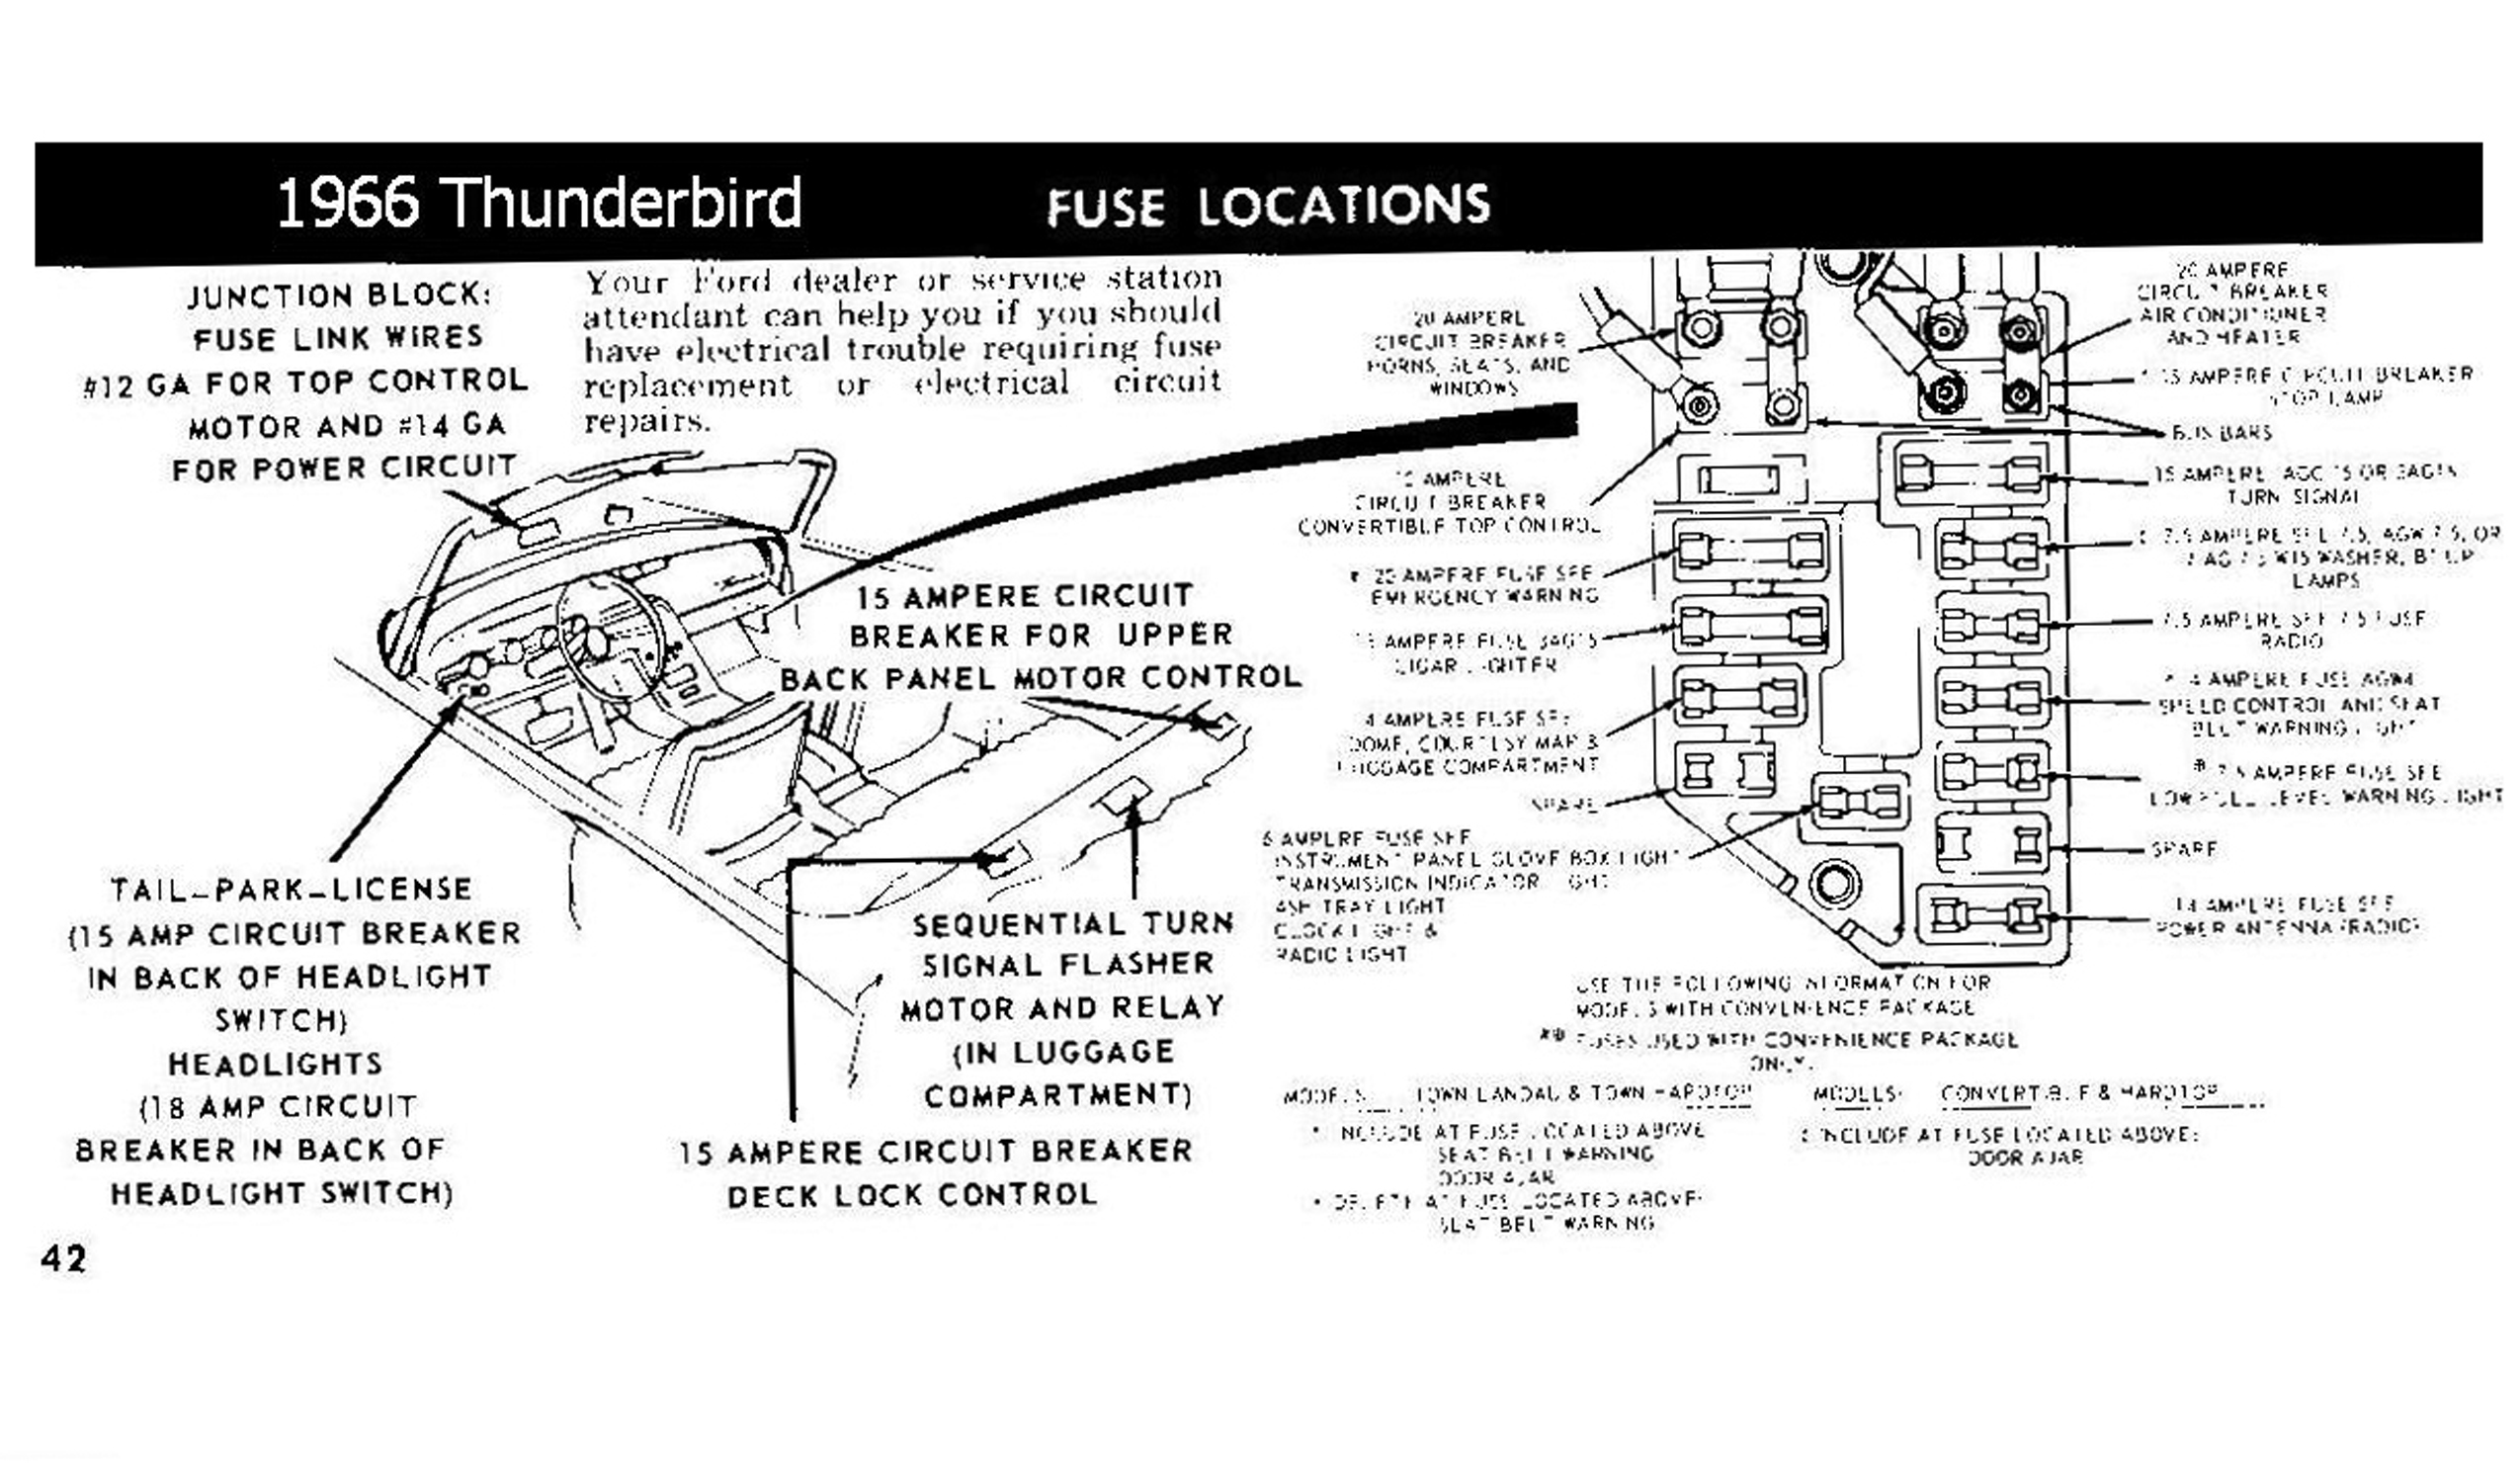 1994 ford thunderbird fuse diagram house wiring diagram symbols u2022 rh maxturner co 96 ford taurus fuse box location 96 ford taurus fuse box location